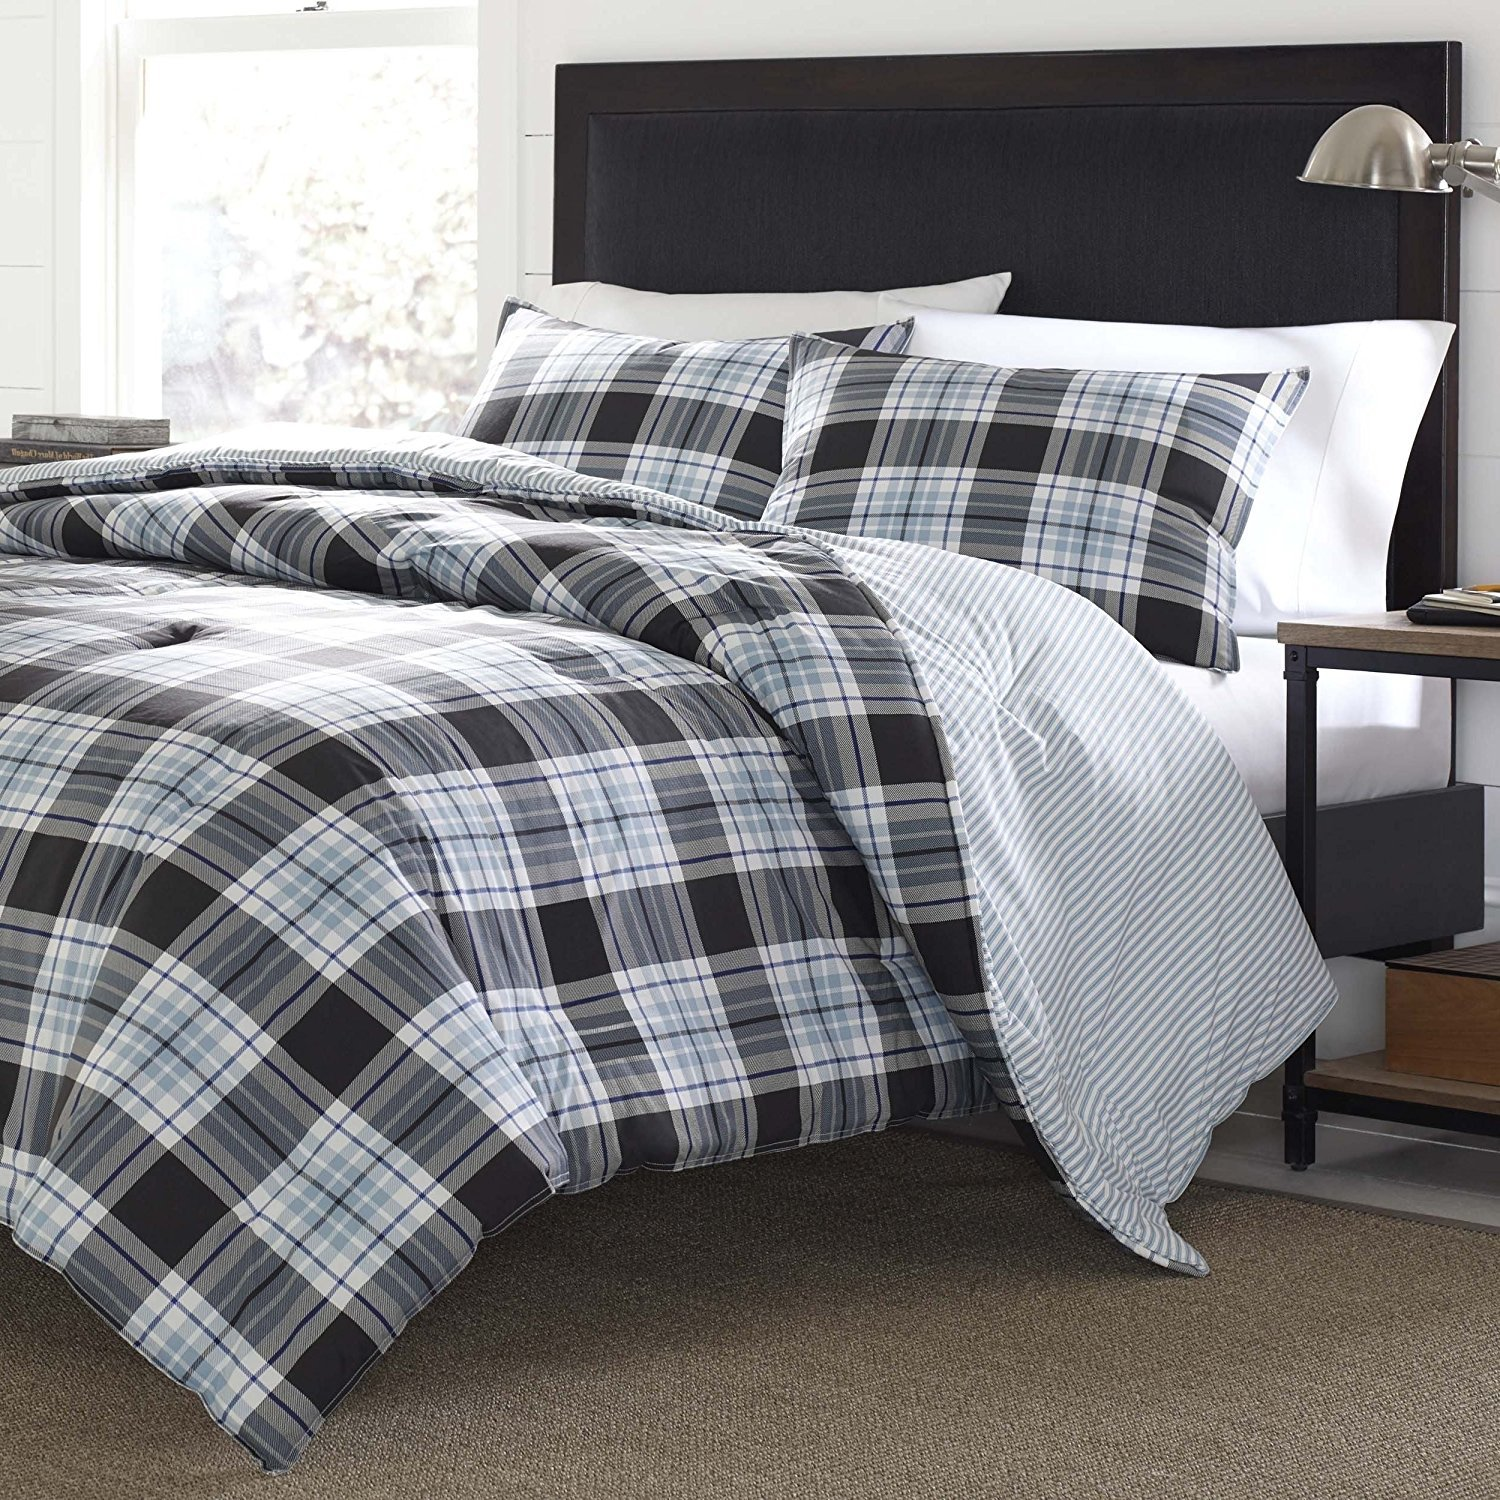 nautica bedding cunningham set blue overstock bath product plaid comforter today shipping free